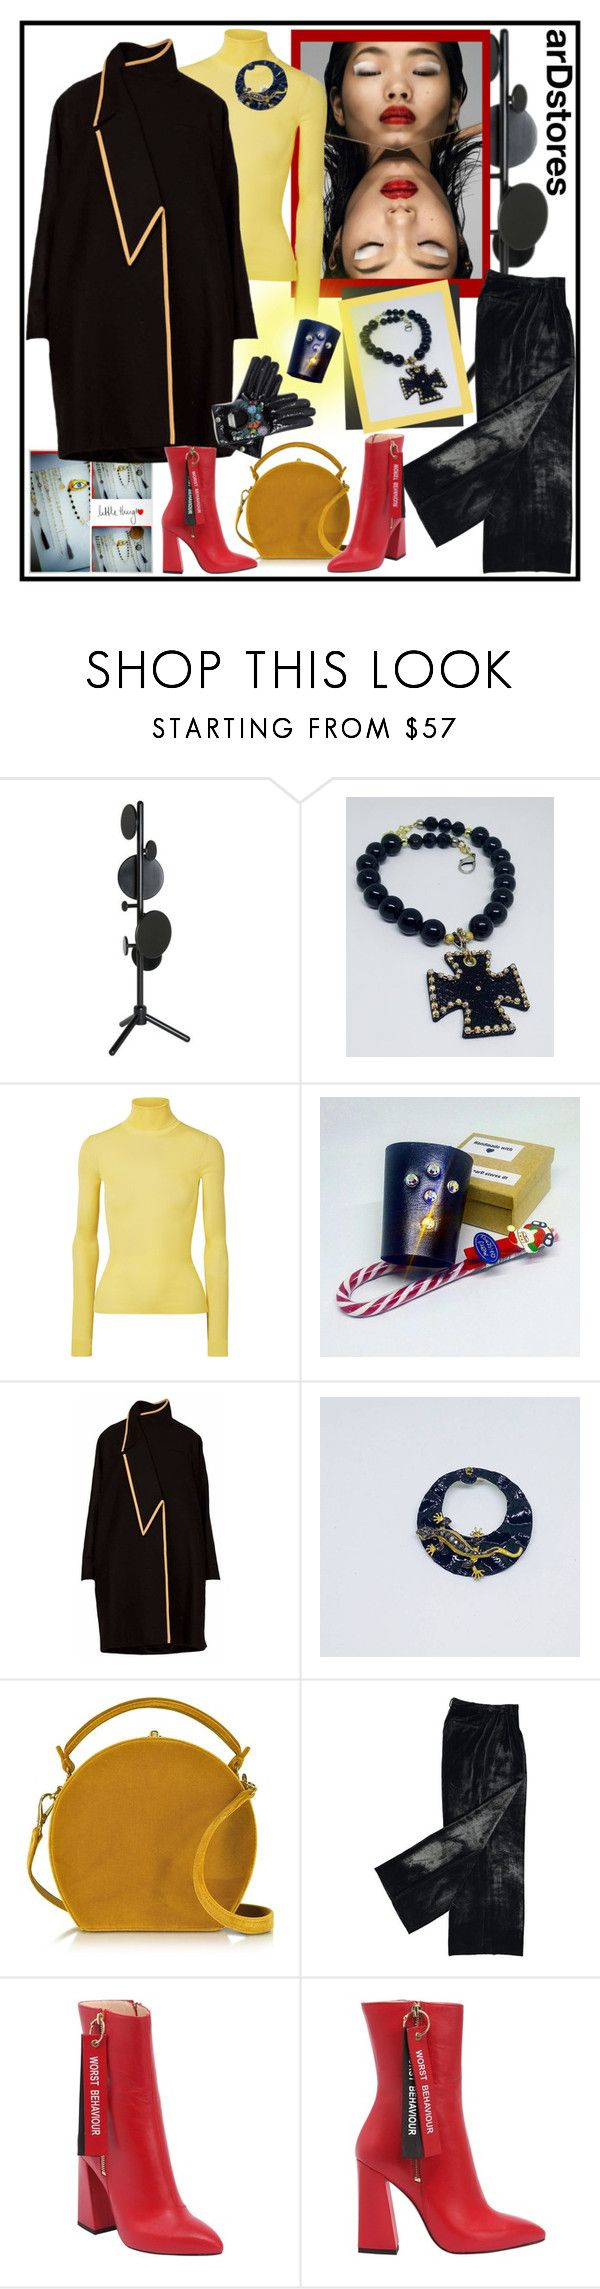 """arDstores (2)"" by carola-corana ❤ liked on Polyvore featuring Tom Dixon, Calvin Klein 205W39NYC, Bertoni, Havva, Gucci, handmade and dinaluigi"